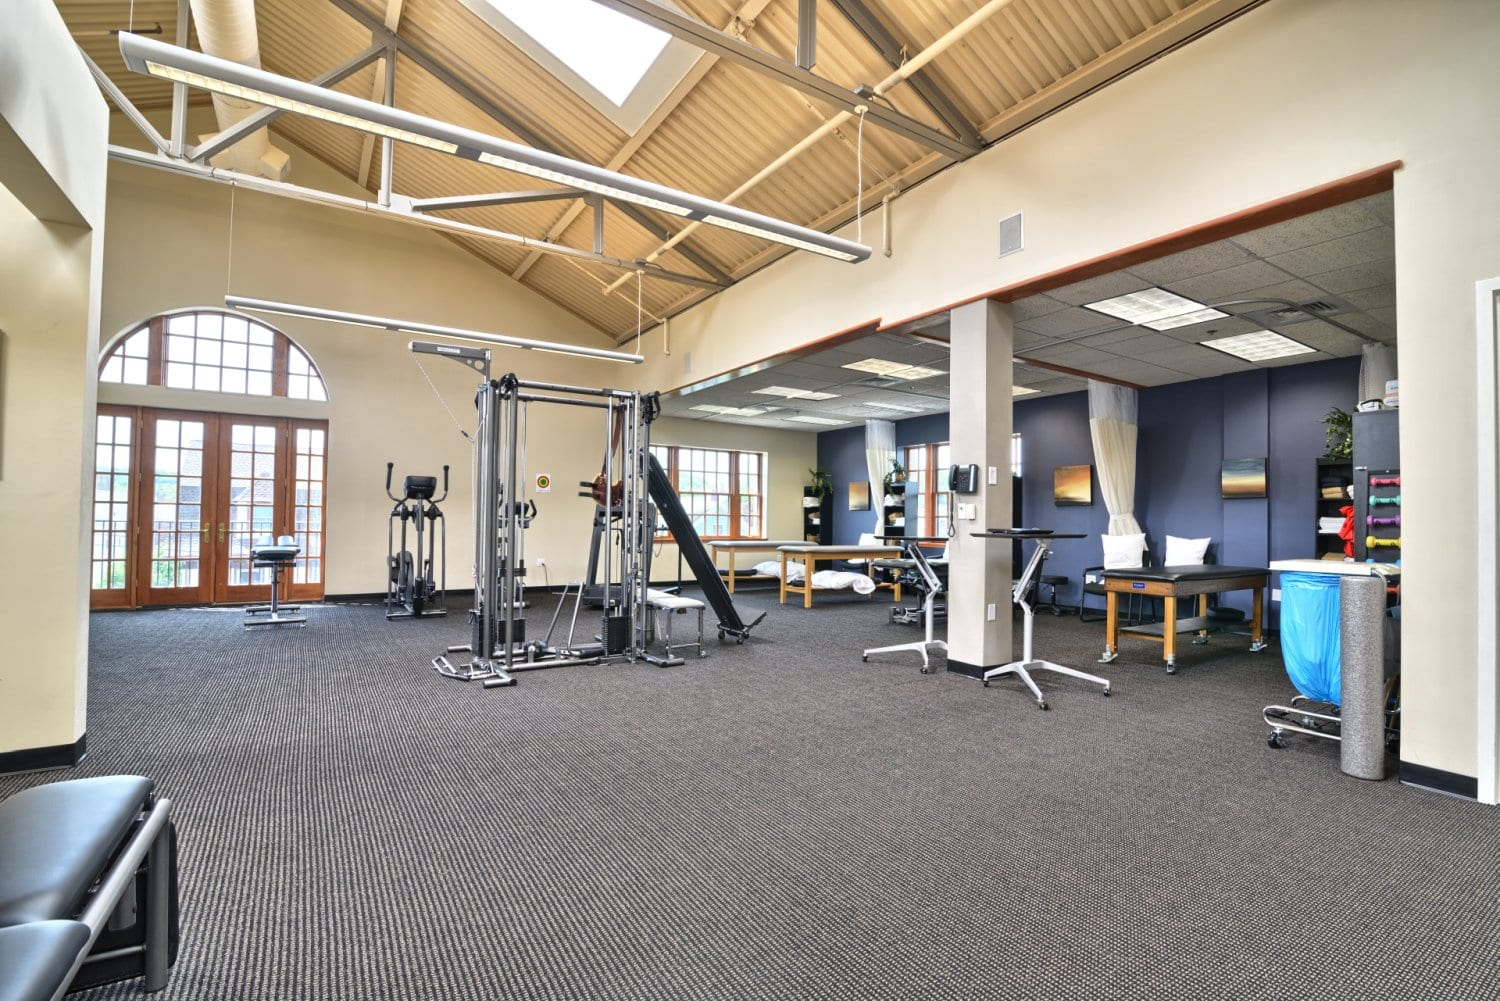 An image of the interior of our physical therapy clinic in Arlington, Massachusetts.